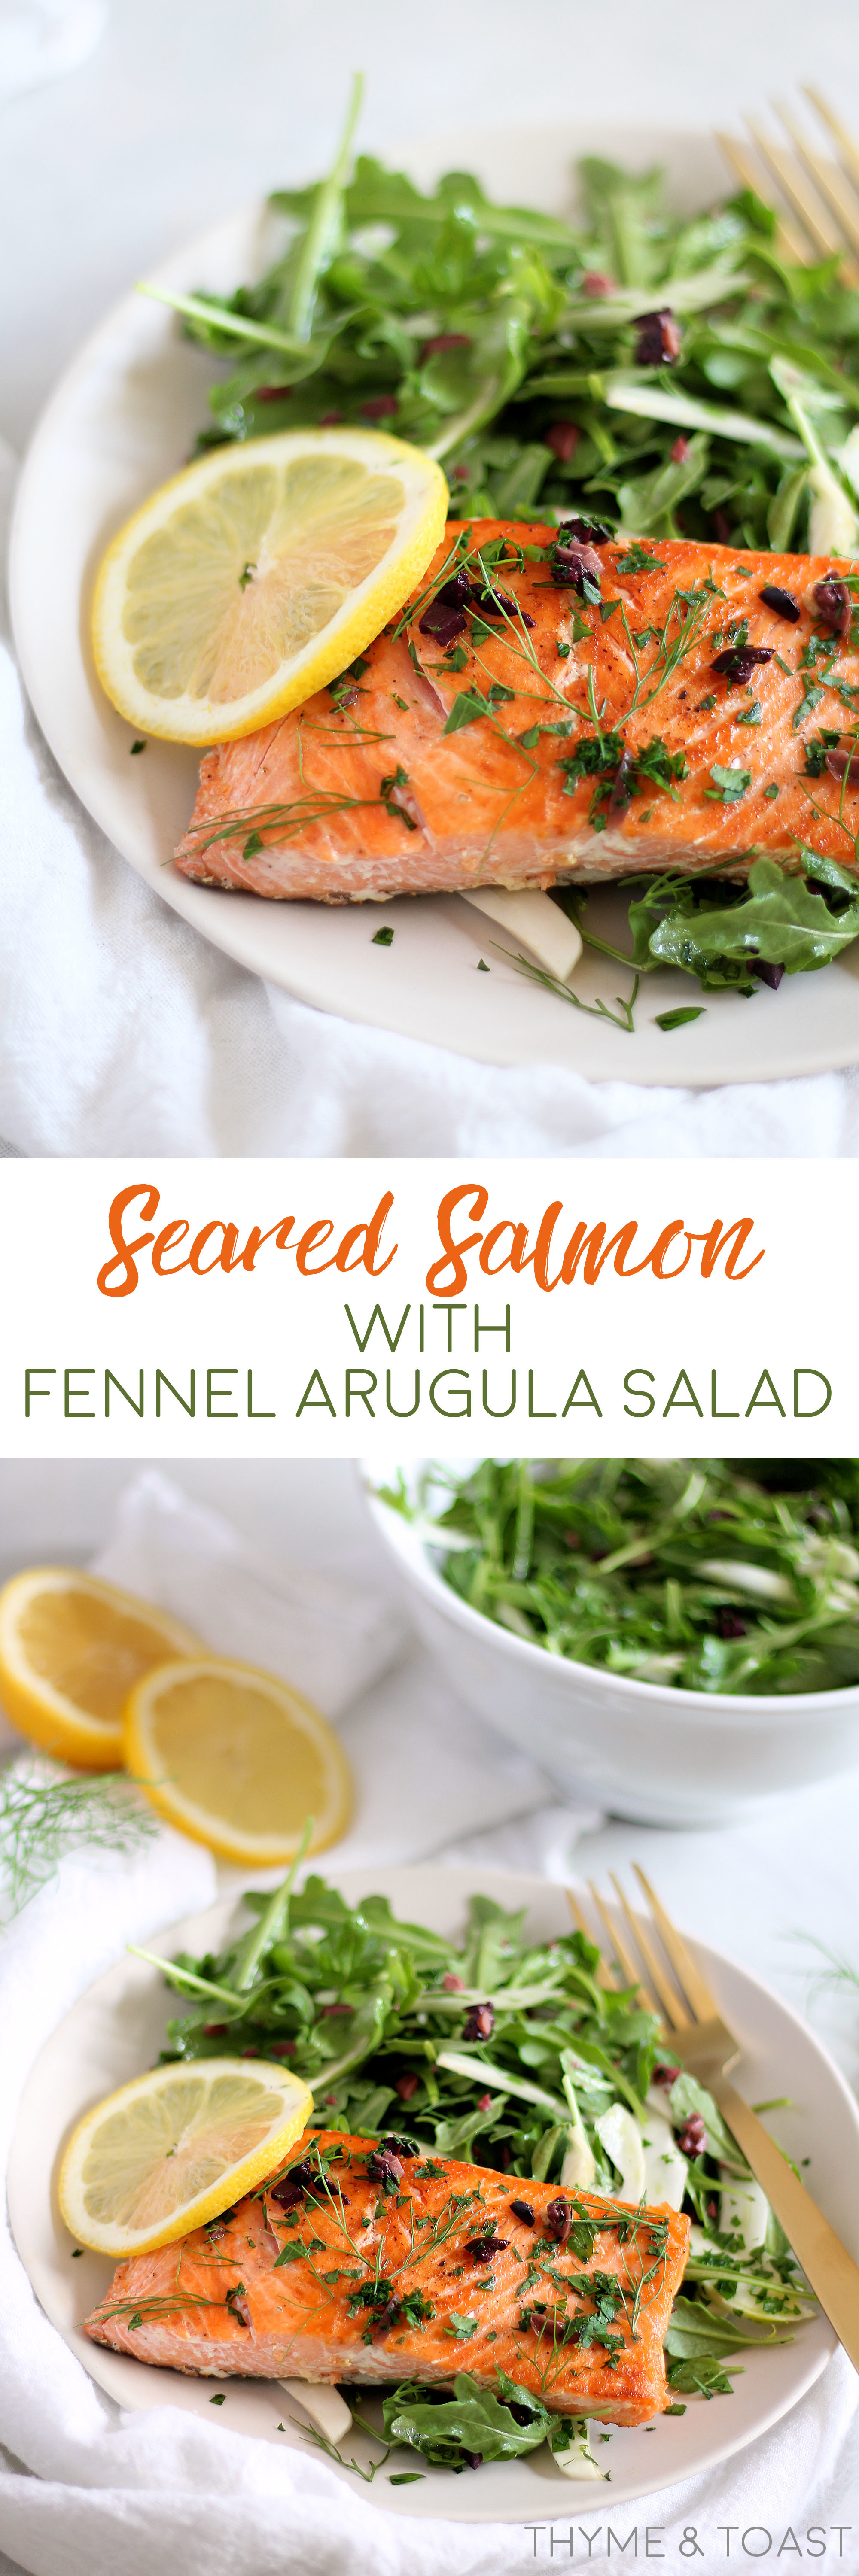 Seared Salmon with Fennel Arugula Salad